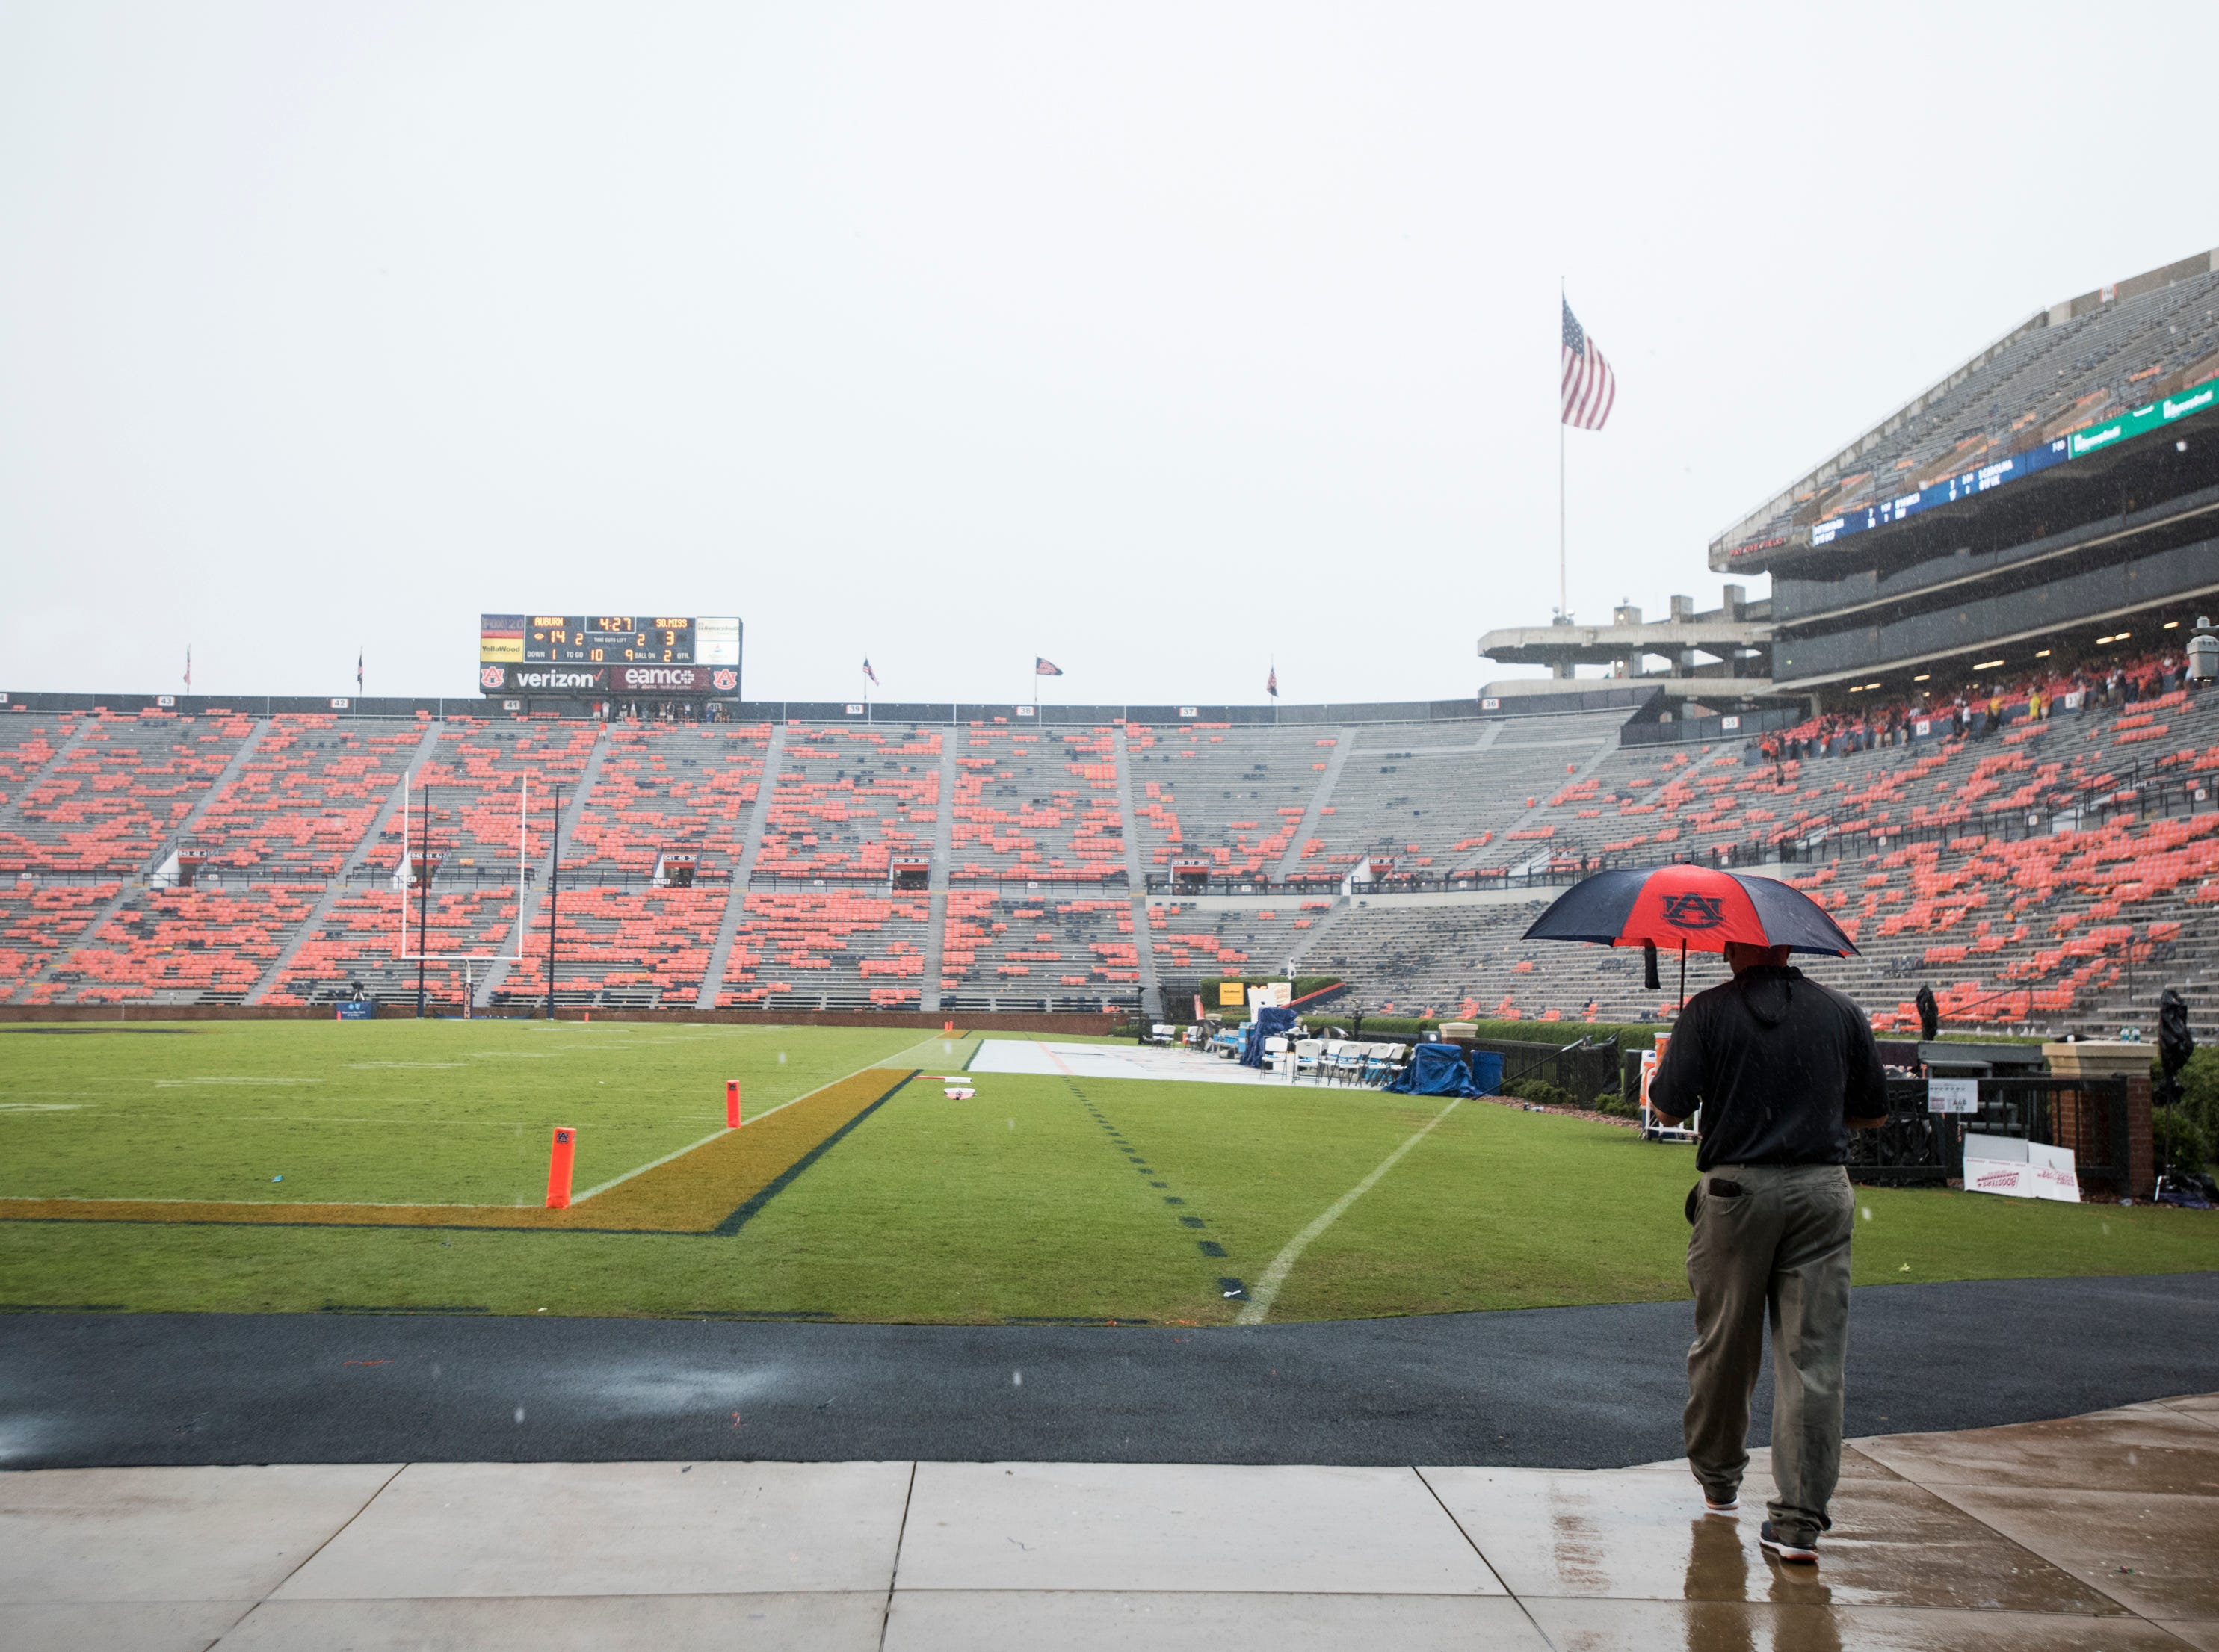 Players, fans, workers take cover during a weather delay at Jordan-Hare Stadium in Auburn, Ala., on Saturday, Sept. 29, 2018. Auburn leads Southern Miss 14-3, the game went into a weather delay with 4:27 left in the second quarter.